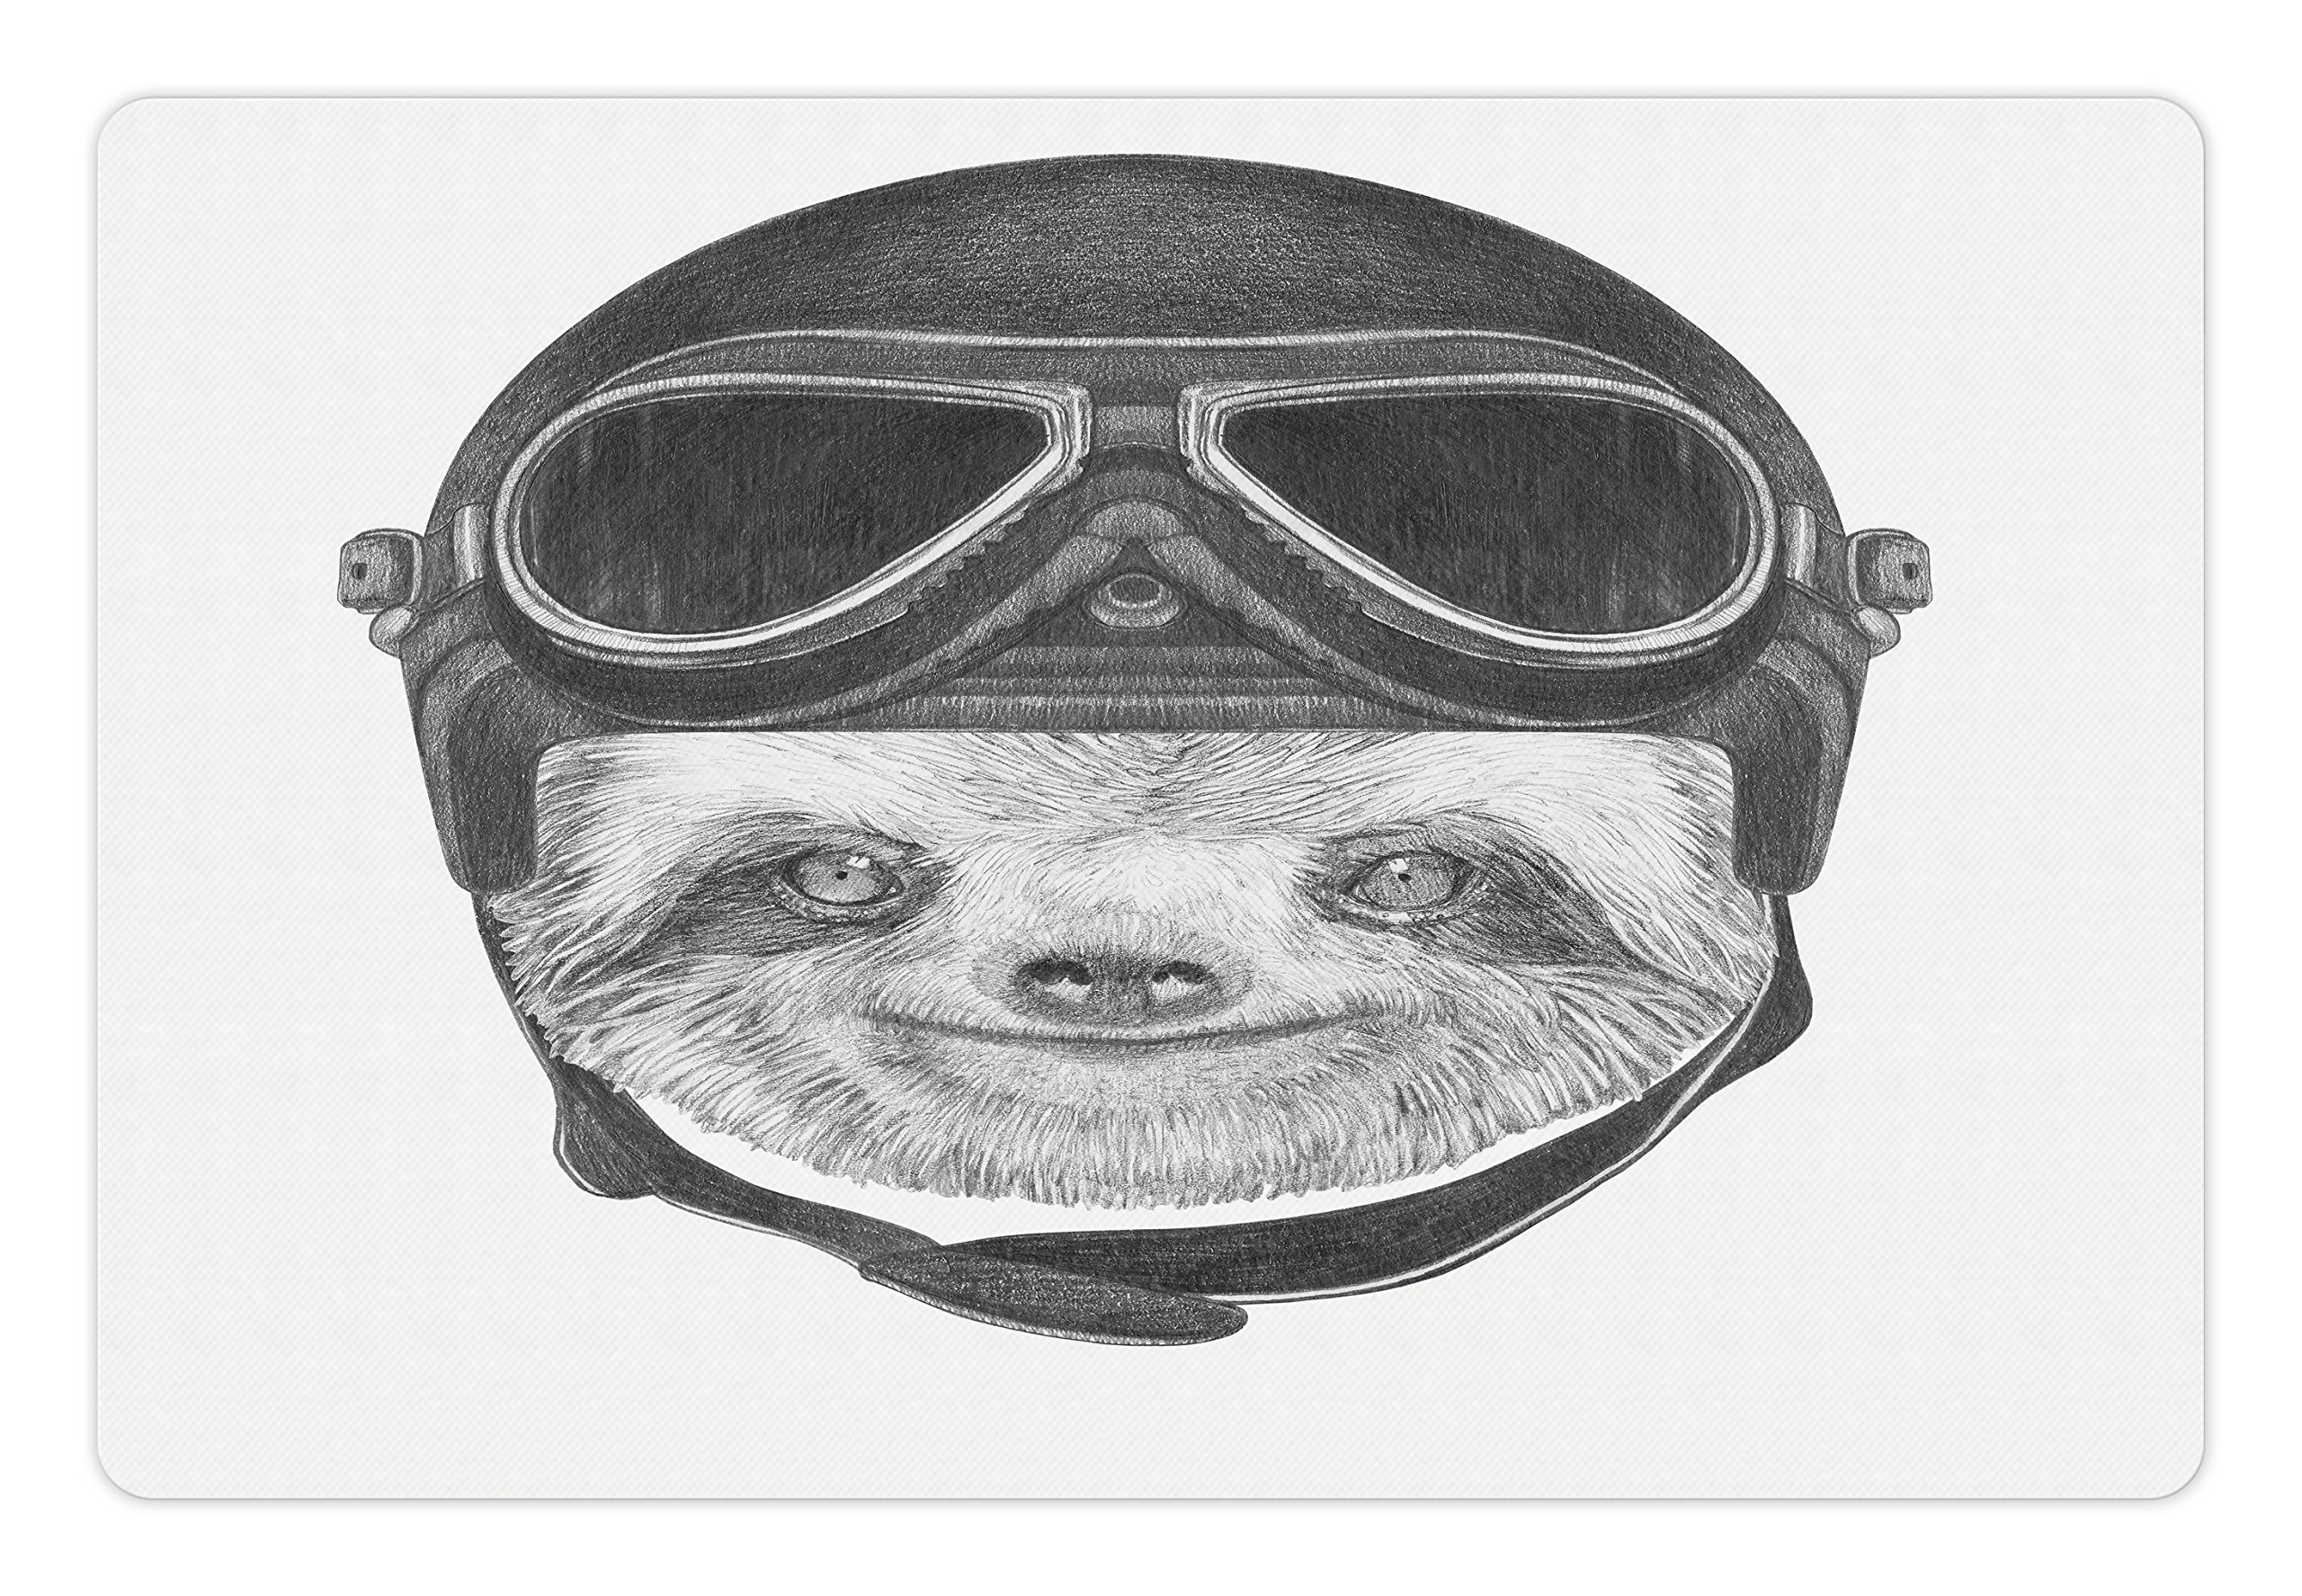 Ambesonne Sloth Pet Mat for Food and Water, Hand Drawn Portrait of a Sloth with Vintage Effect Biker Rider Animal in Urban Life, Rectangle Non-Slip Rubber Mat for Dogs and Cats, Grey Black